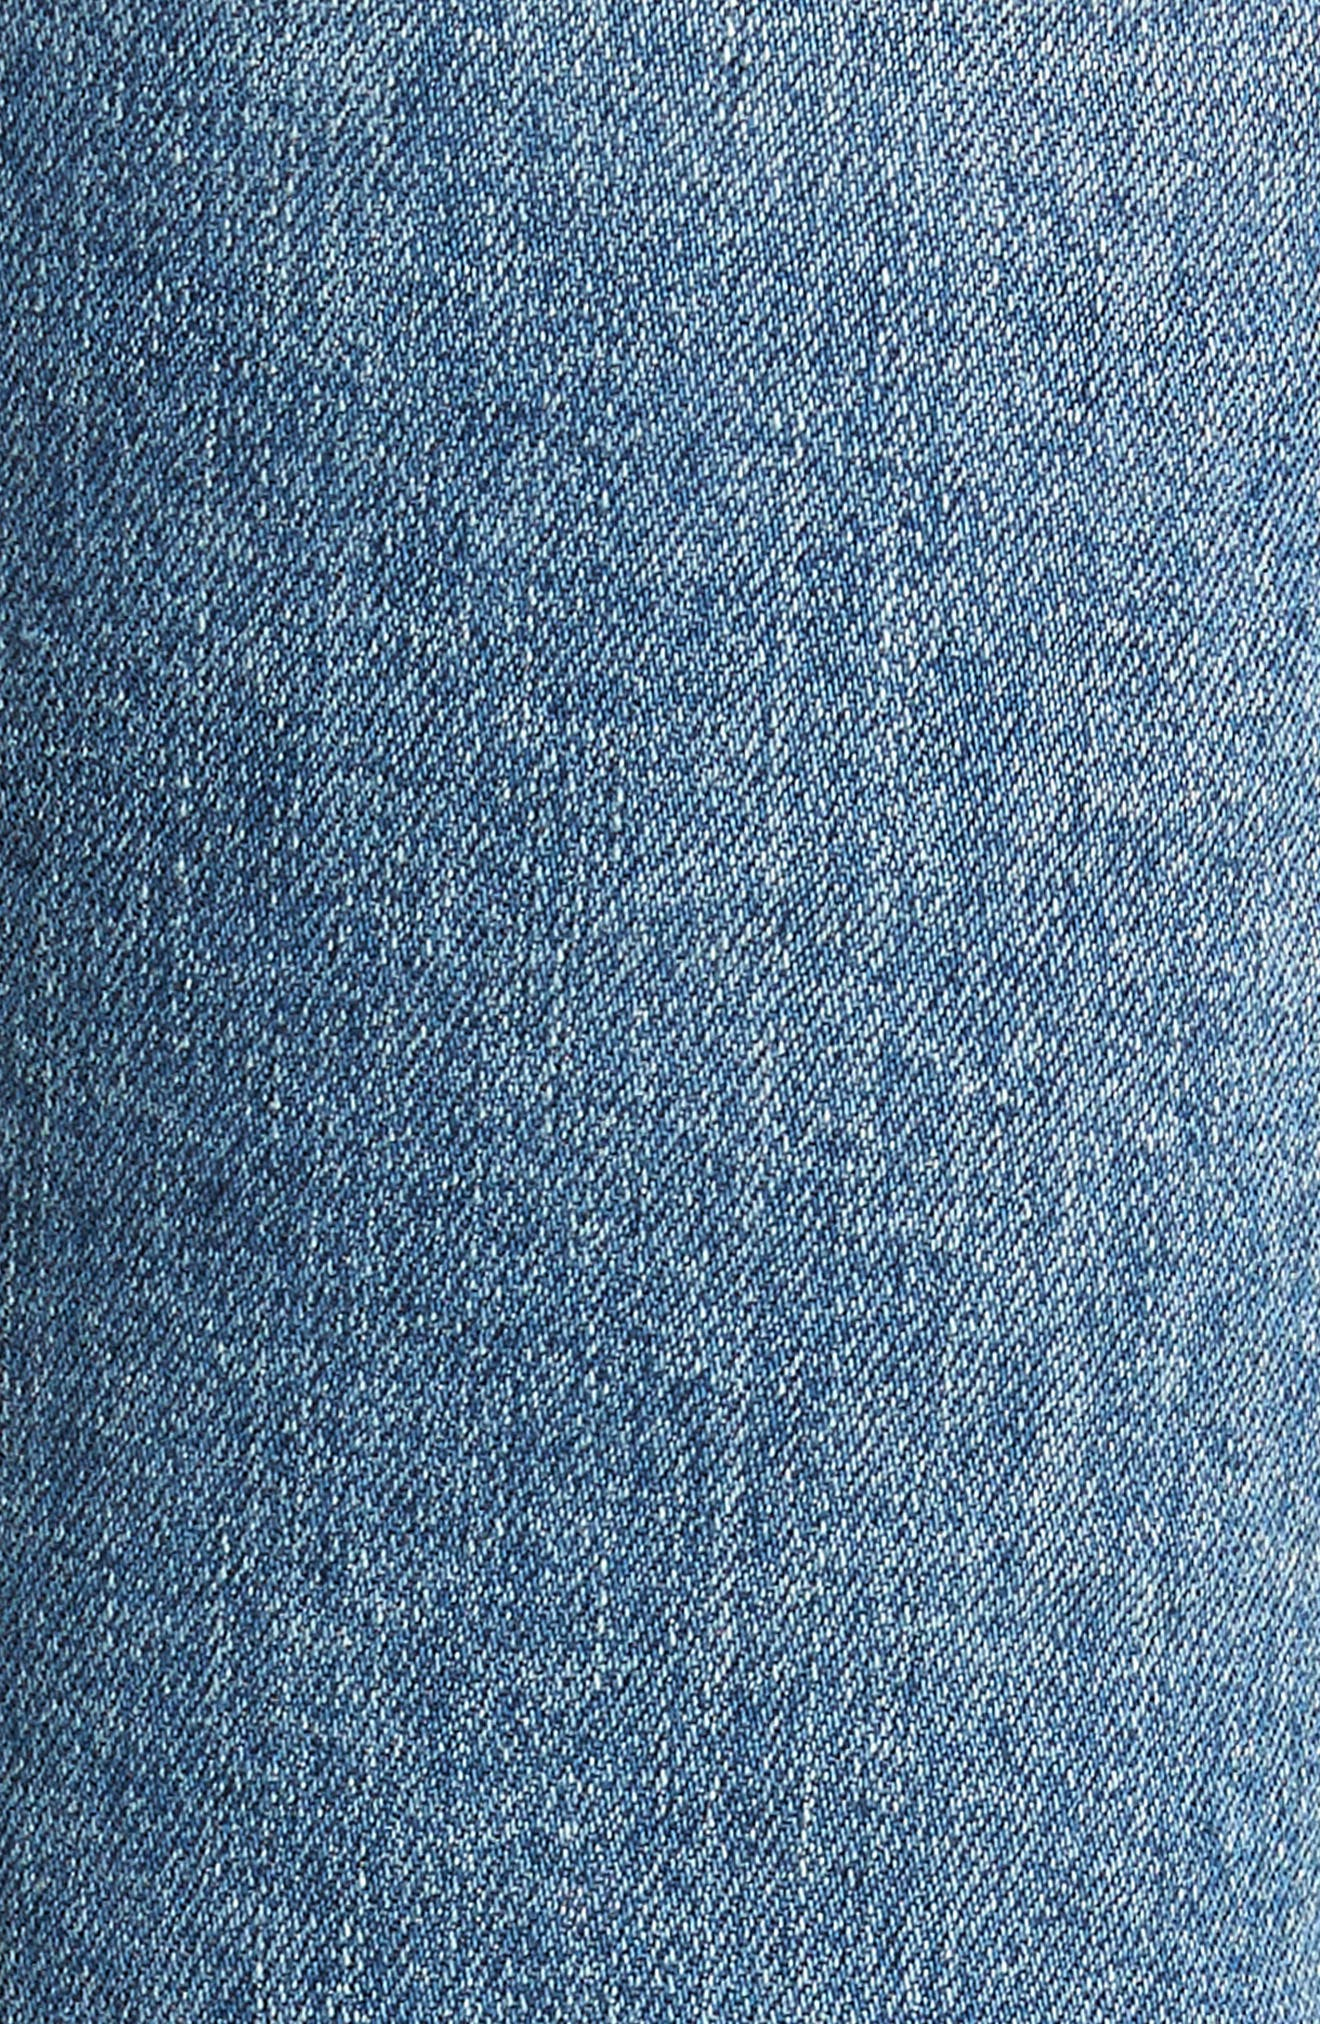 Racer Ripped Skinny Jeans,                             Alternate thumbnail 6, color,                             Distressed Encore